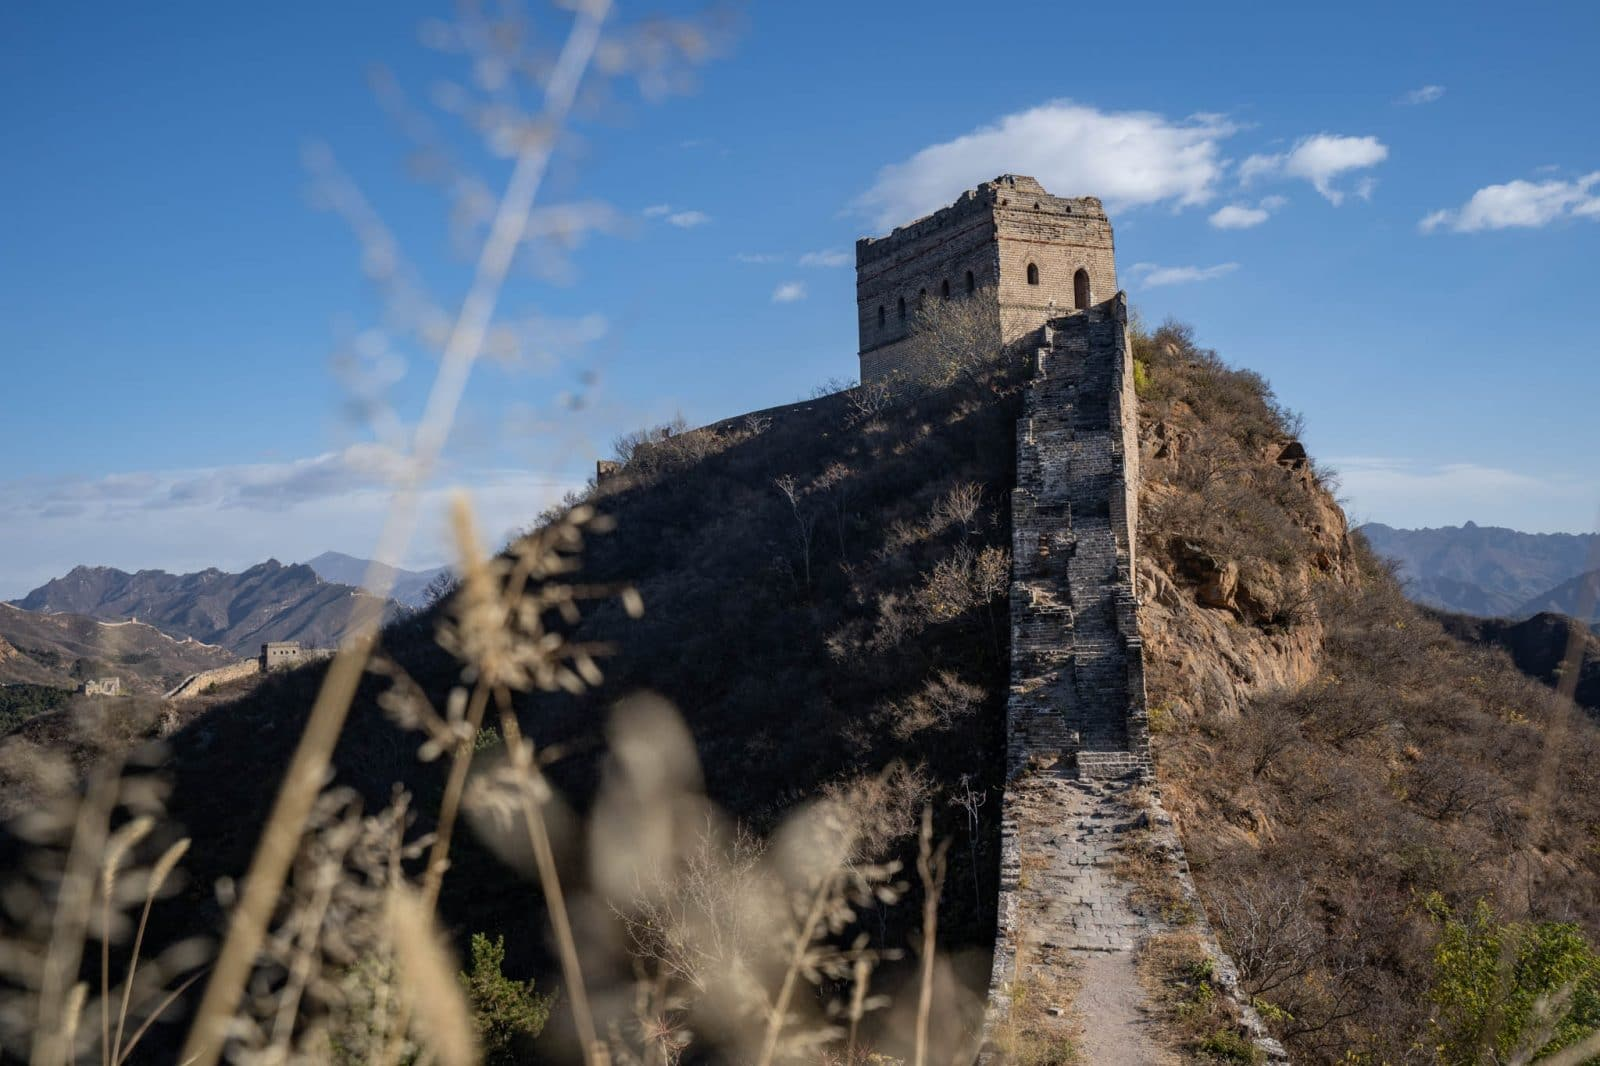 The Great Wall of China trek